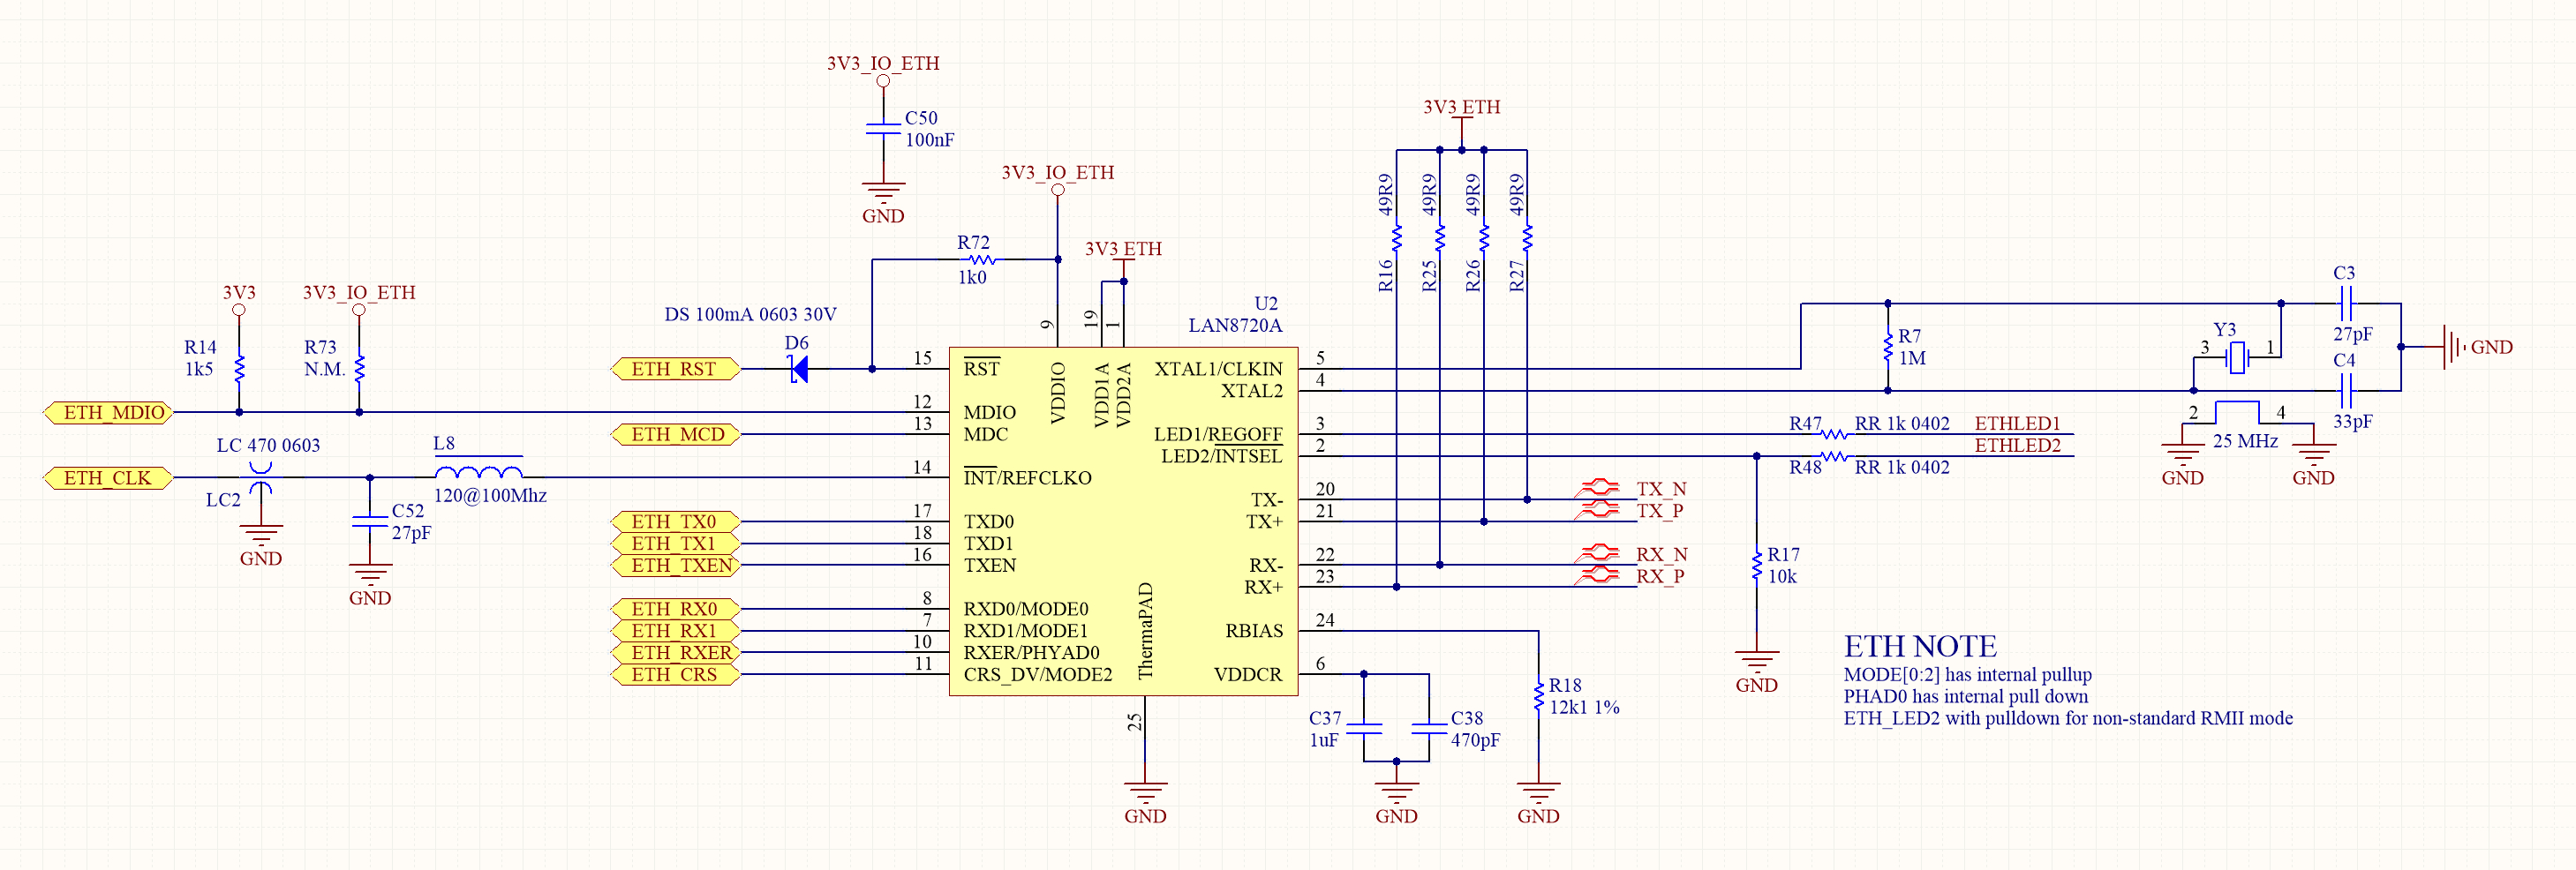 Phy Rj45 Schematic - Wiring Diagrams Hubs - Rj45 Wiring Diagram